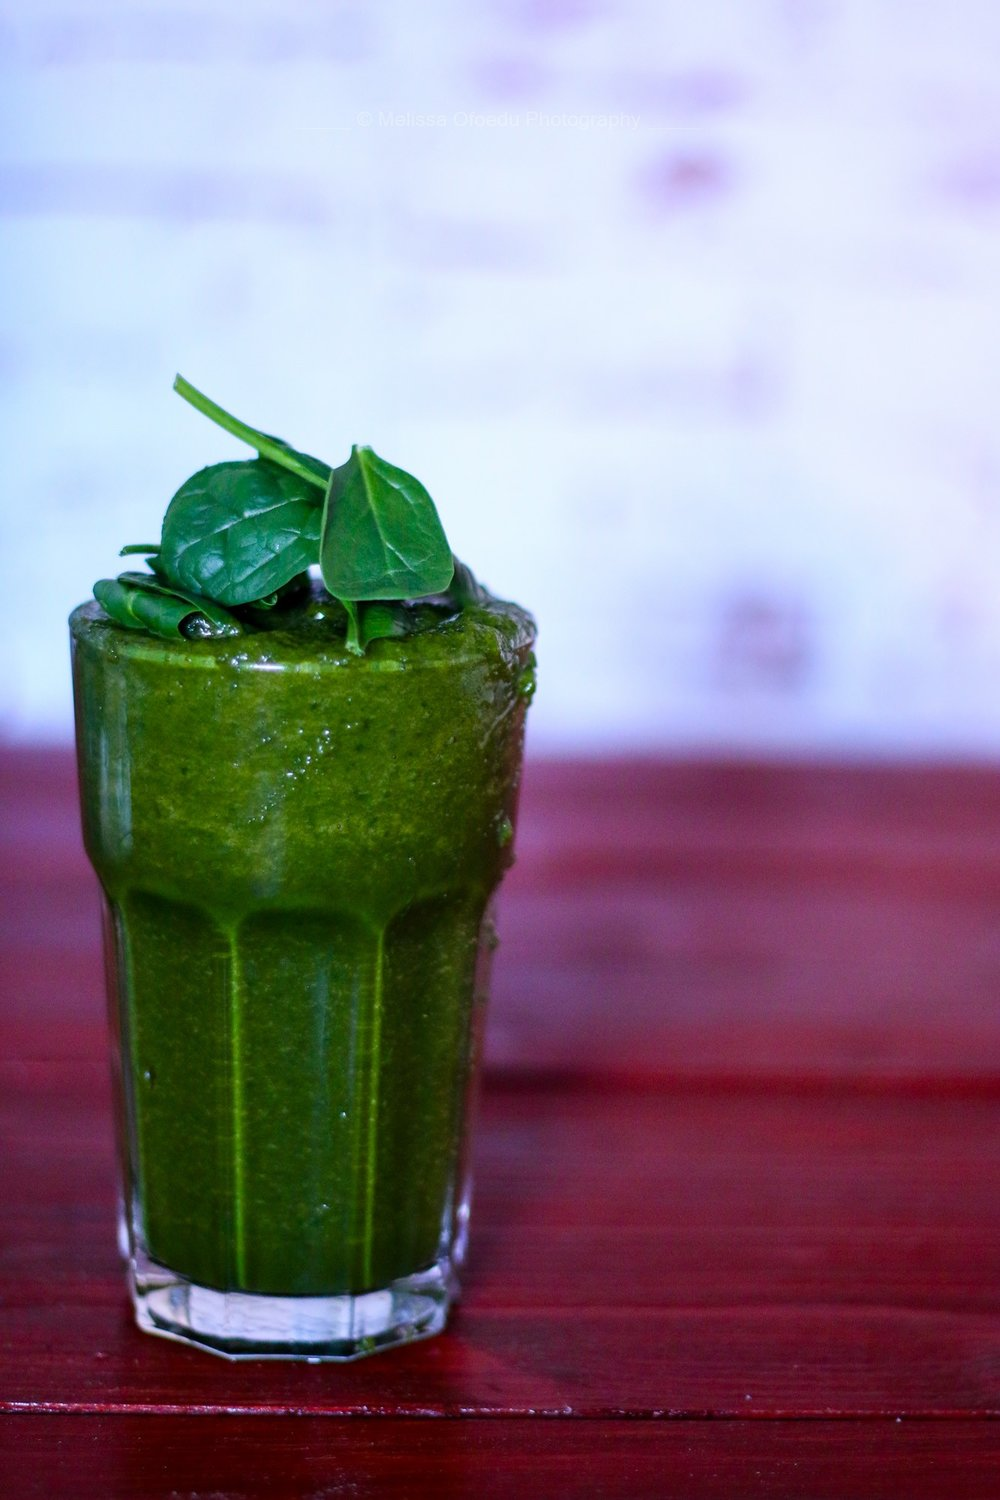 Green-Juice-by-Melissa-Ofoedu-for-A-Sweet-Point-of-View-4.jpg